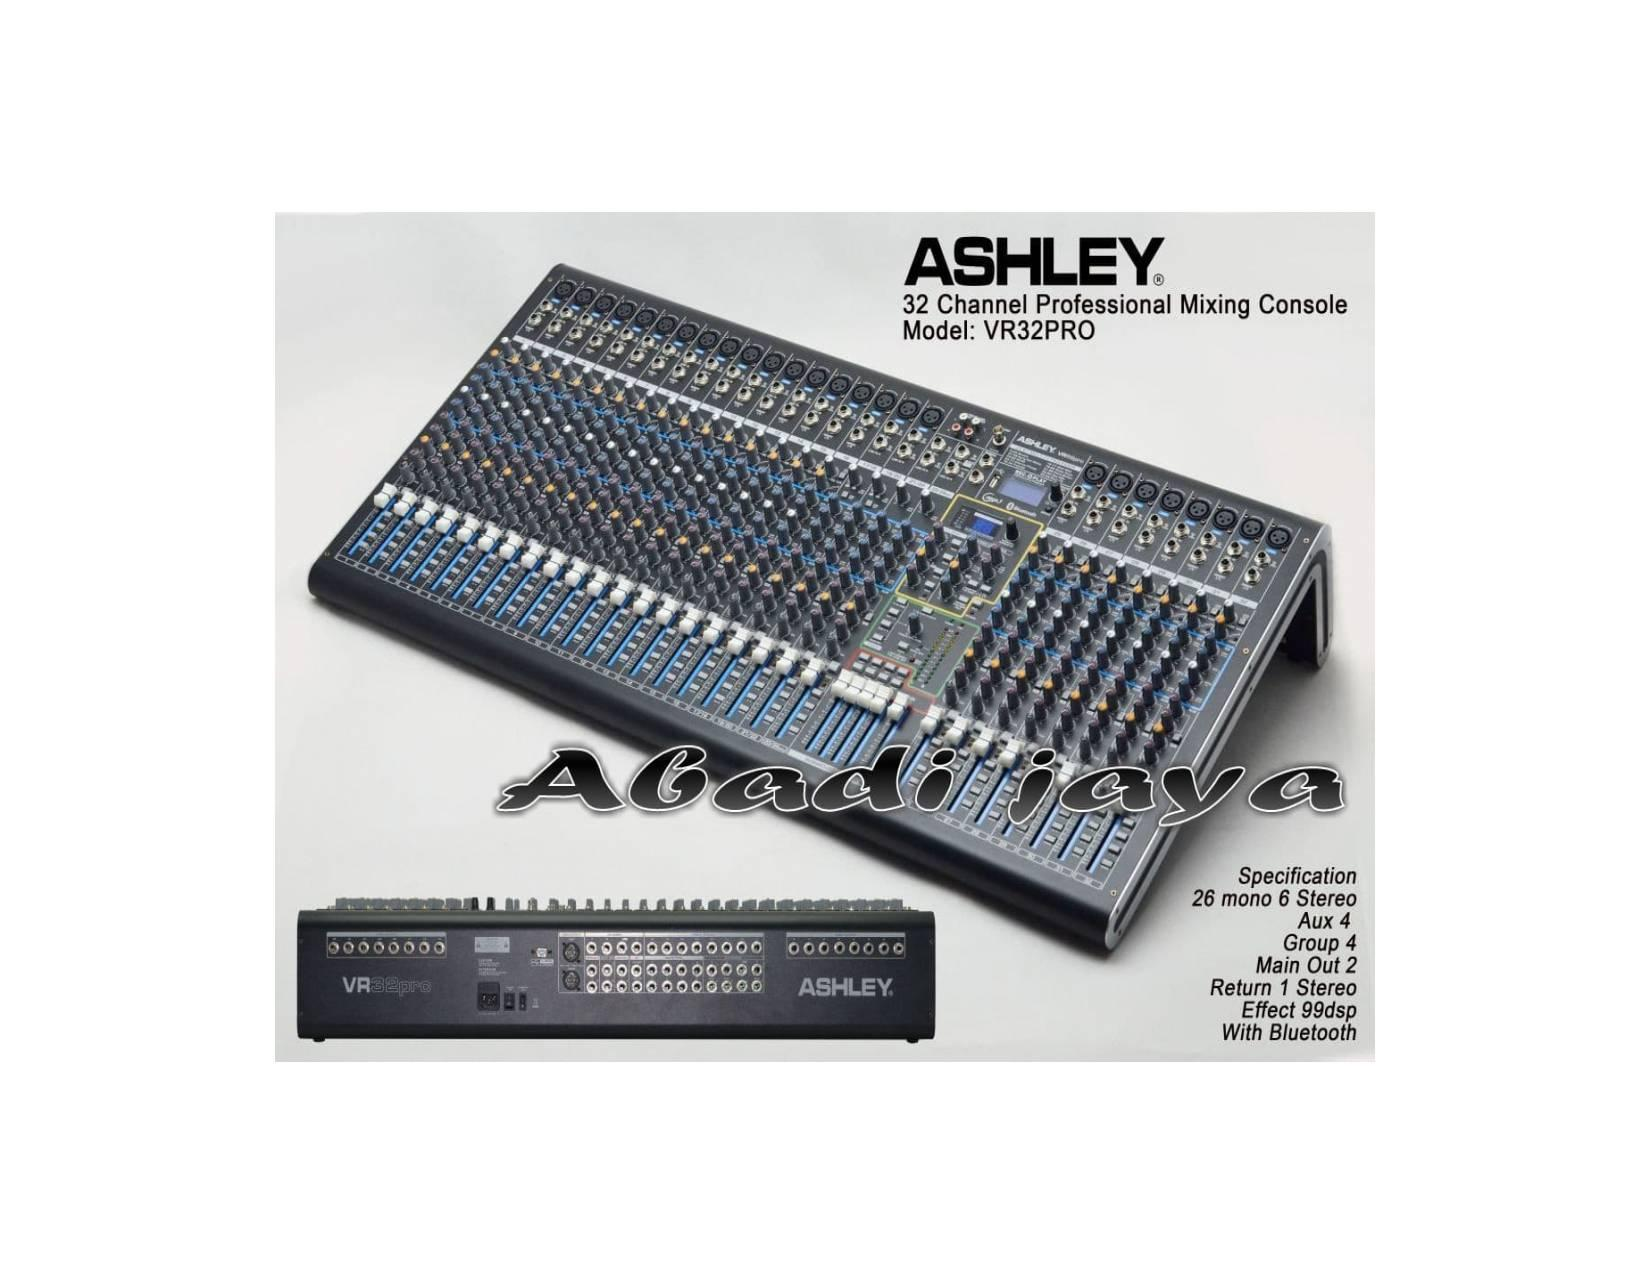 new Mixer ASHLEY VR32PRO 32channel